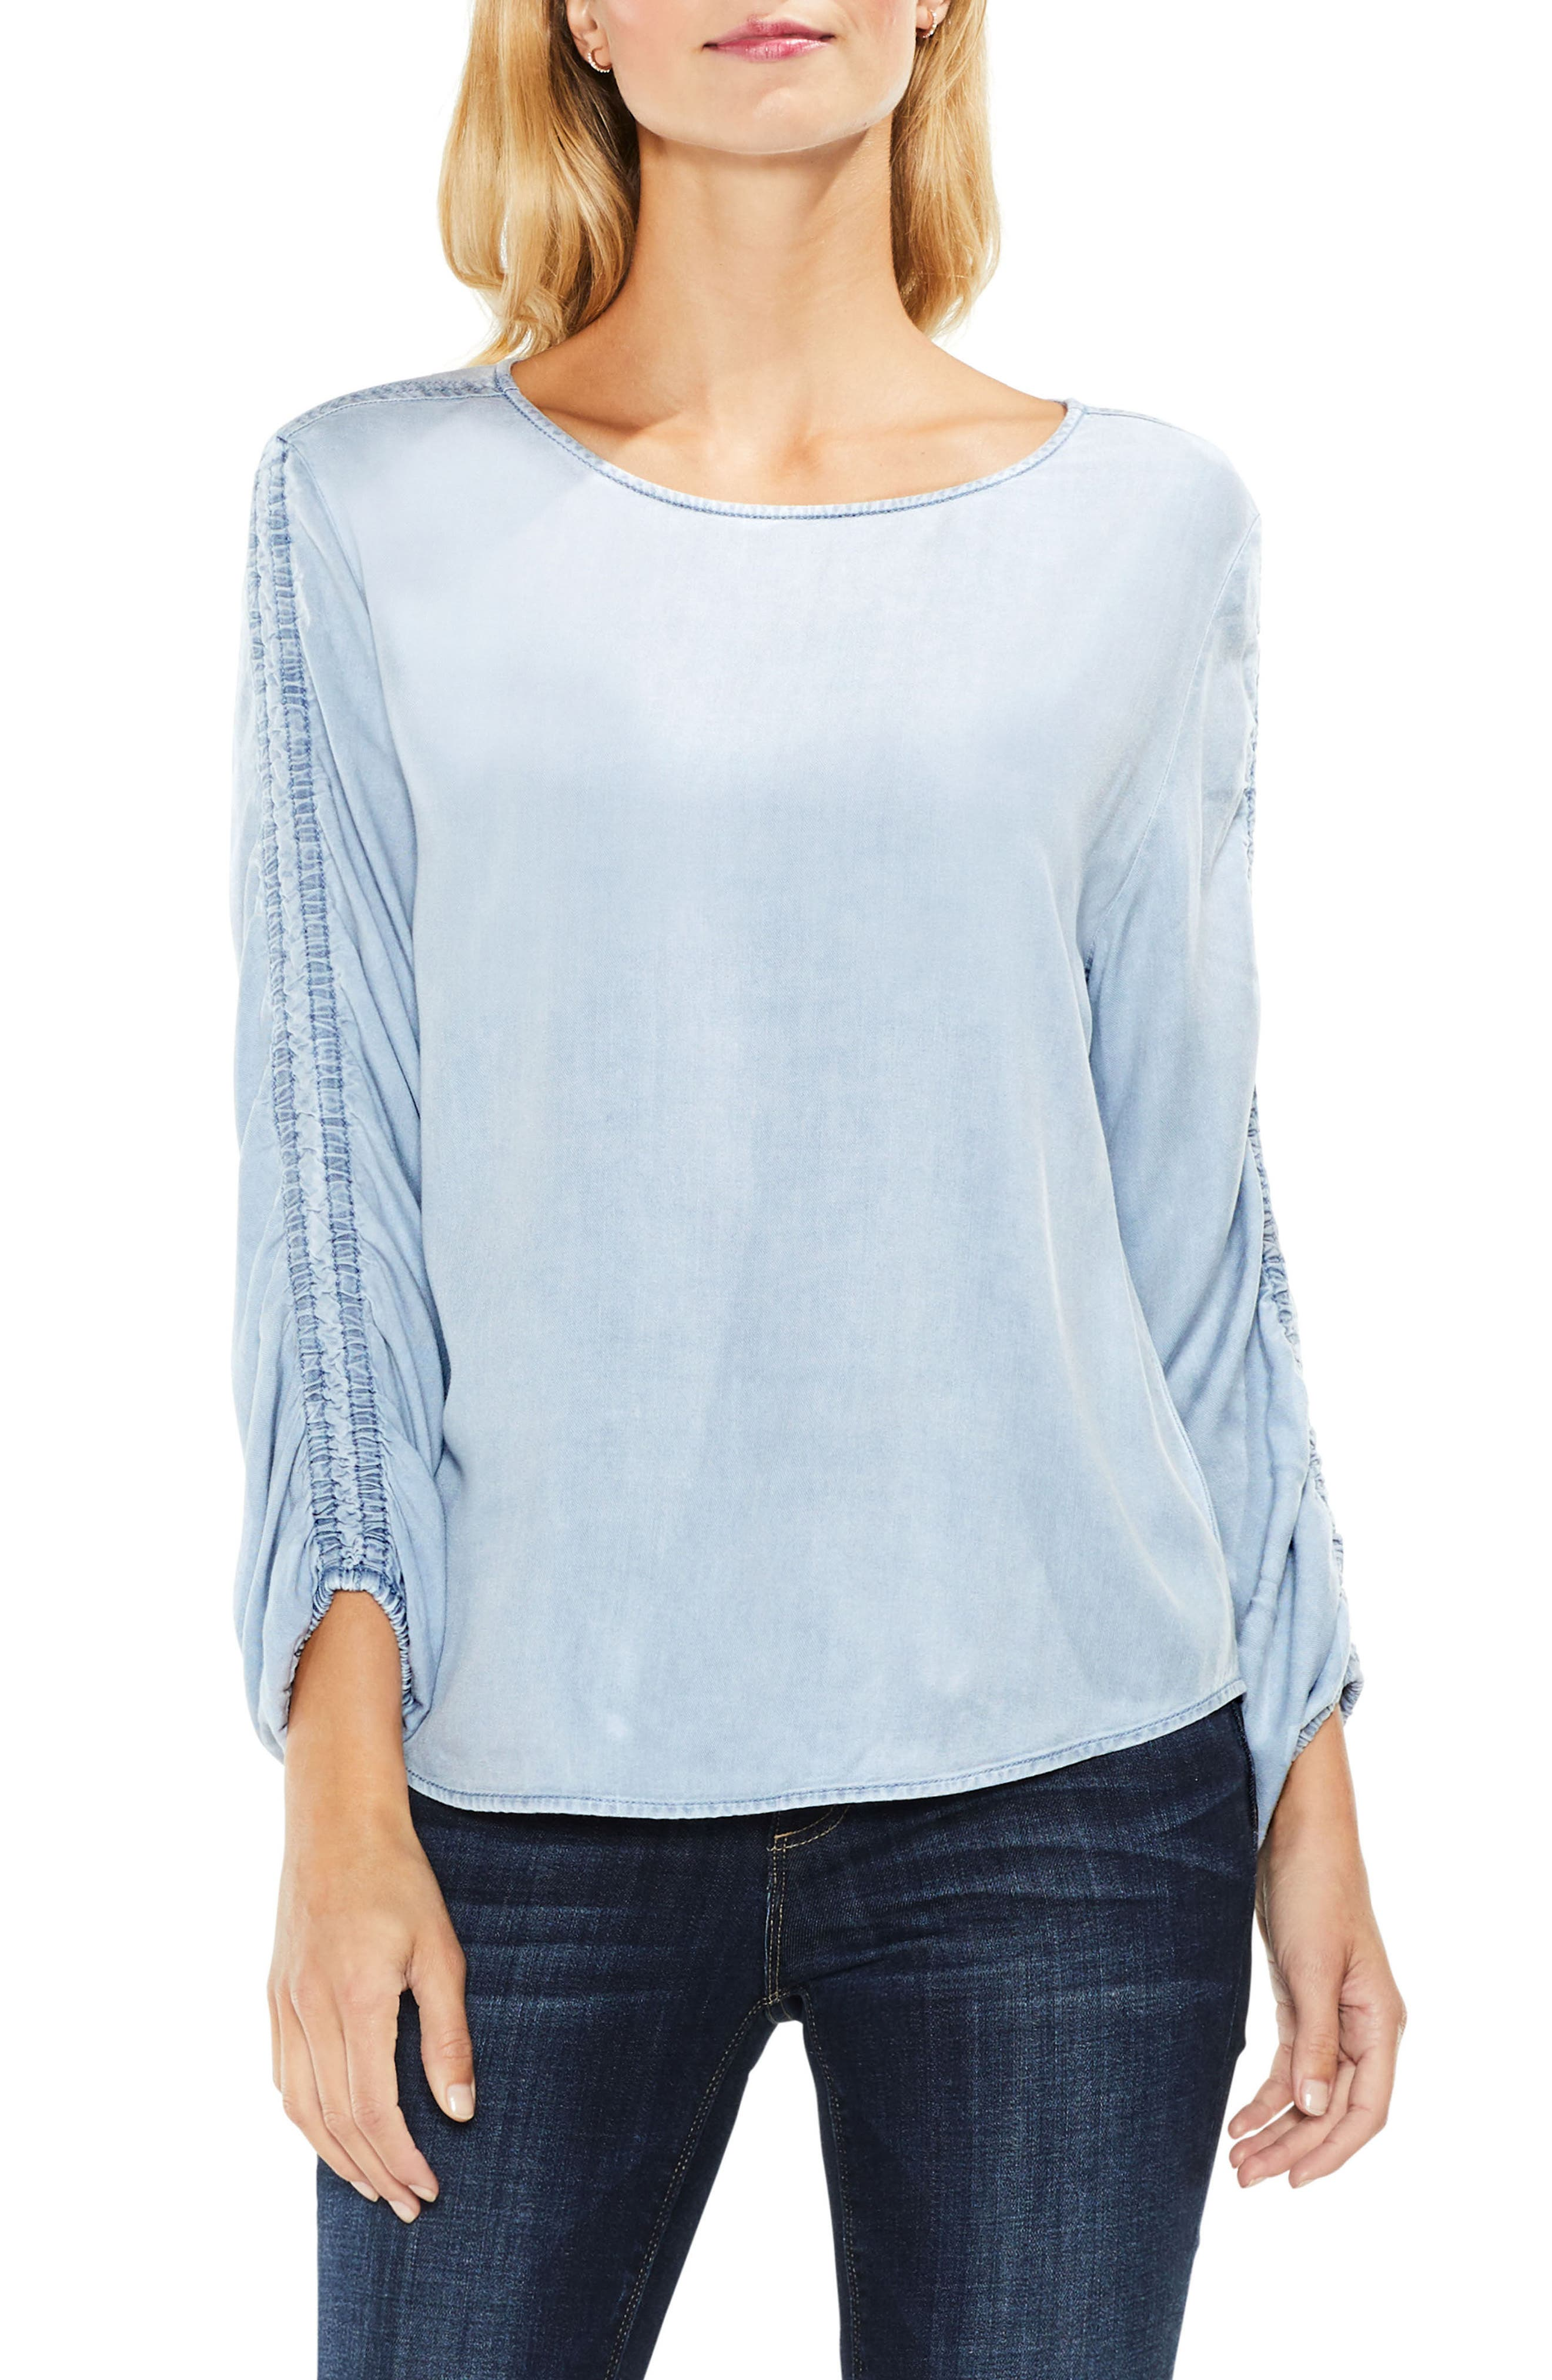 Alternate Image 1 Selected - Two by Vince Camuto Ruched Sleeve Pastel Fade Top